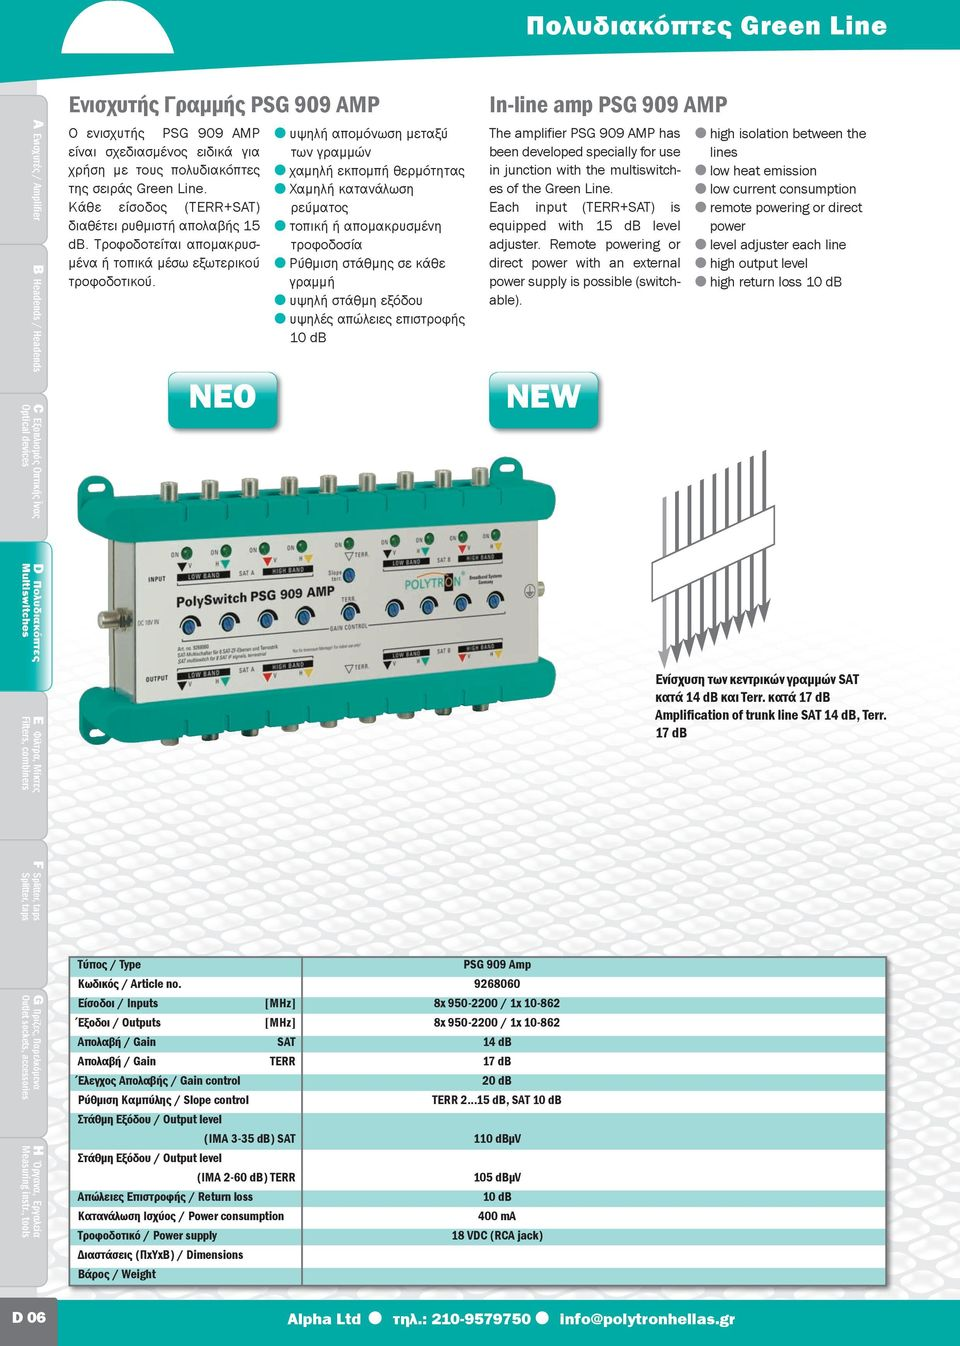 The amplifier PSG 909 MP has been developed specially for use in junction with the multiswitches of the Green Line. ach input (TRR+ST) is equipped with 15 d level adjuster.